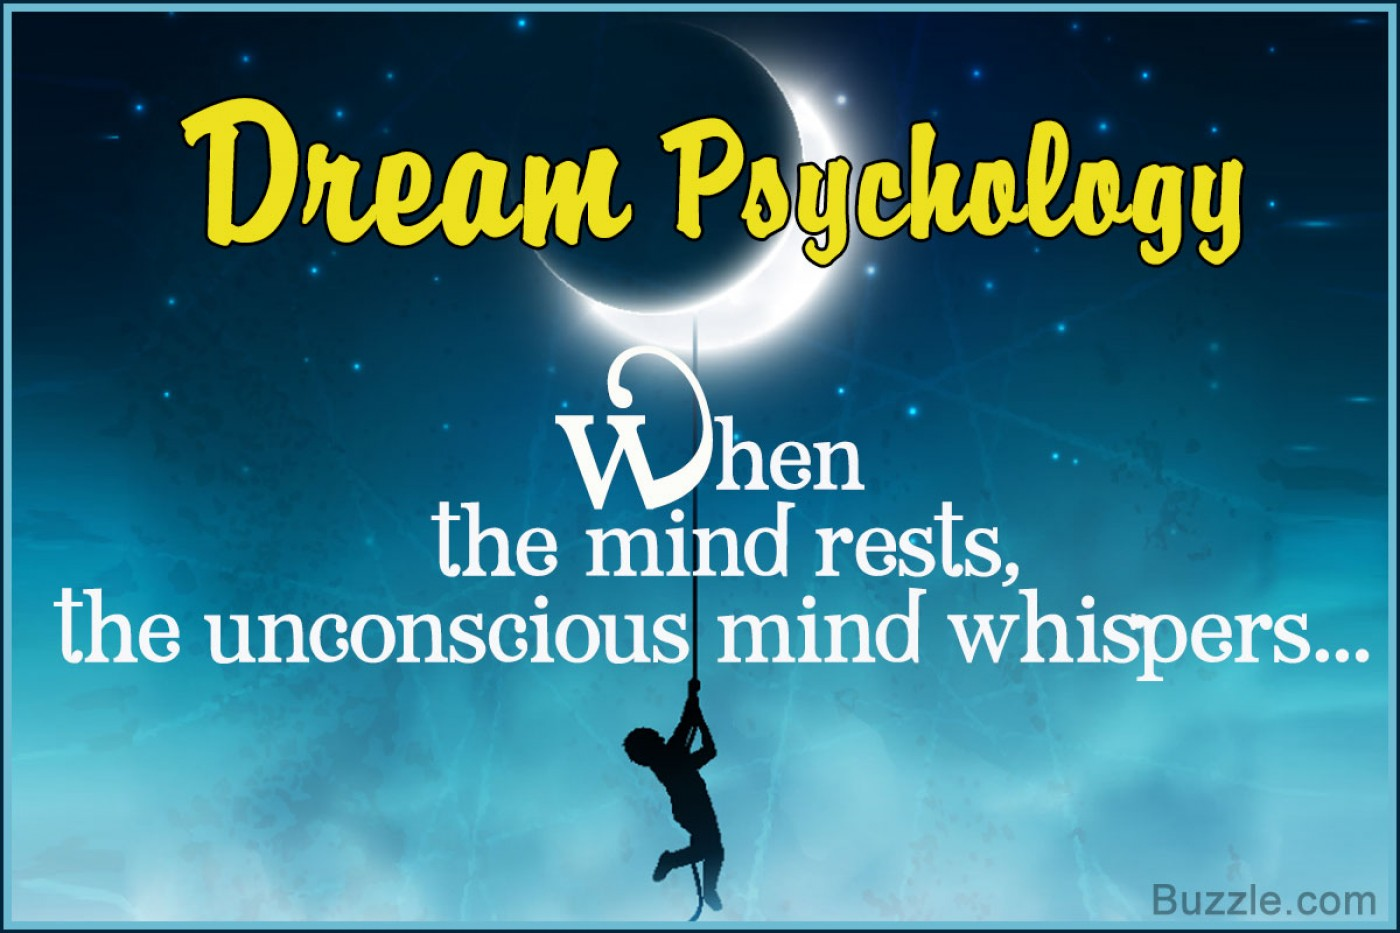 011 Psychology Of Dreams Research Paper Singular On Articles 1400